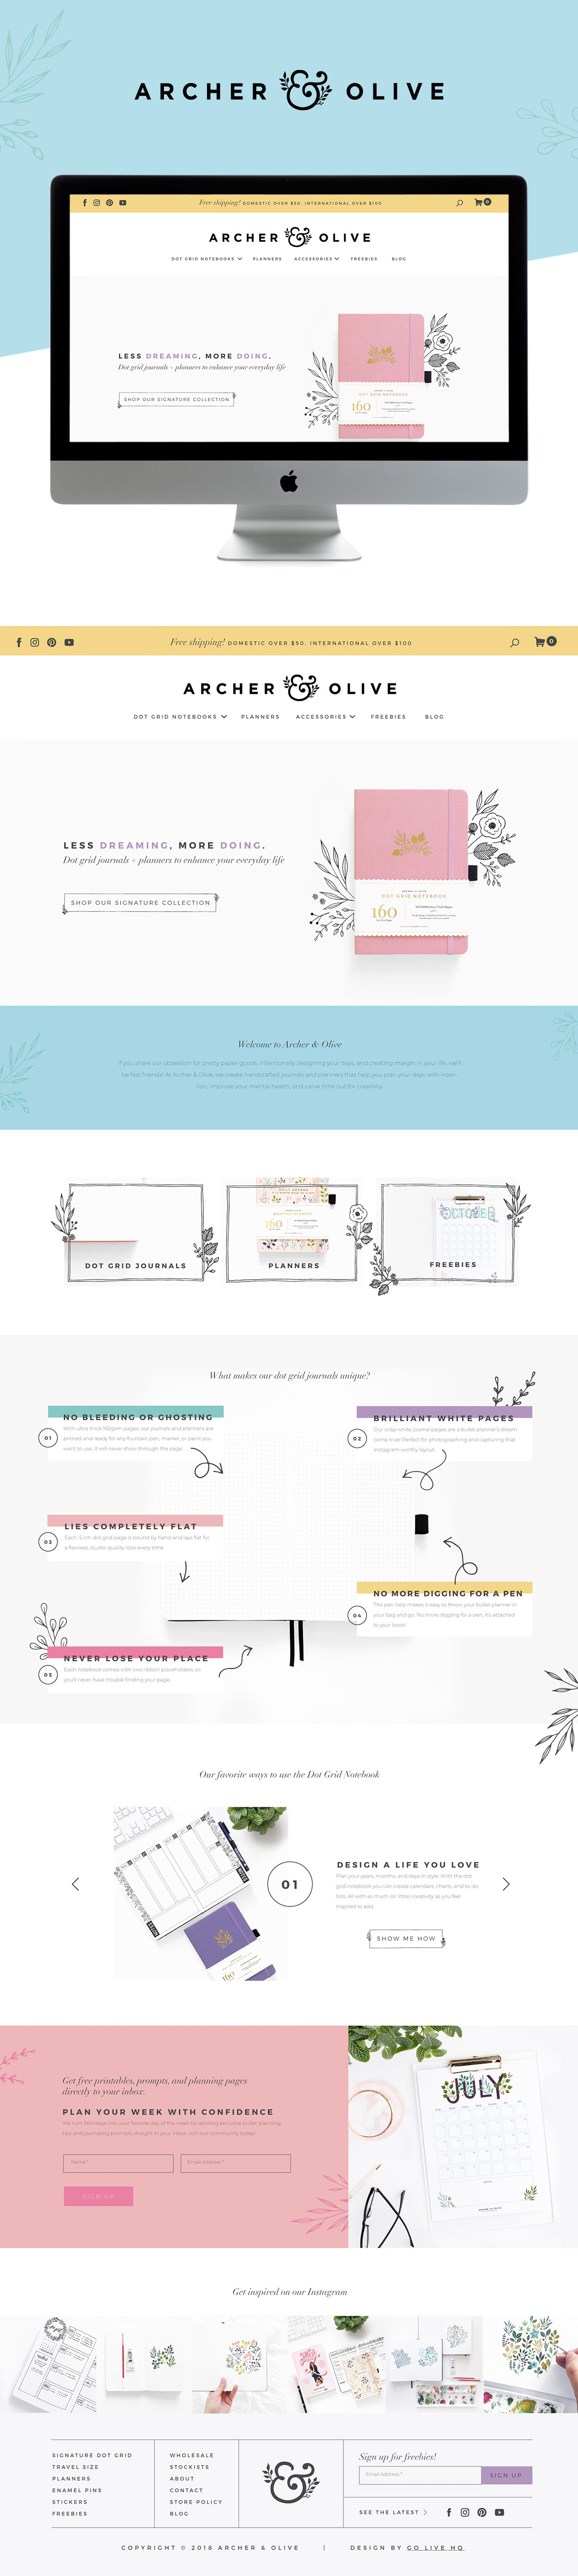 Playful, Modern and Colorful Website Design for Stationary Brand | Design by Go Live HQ